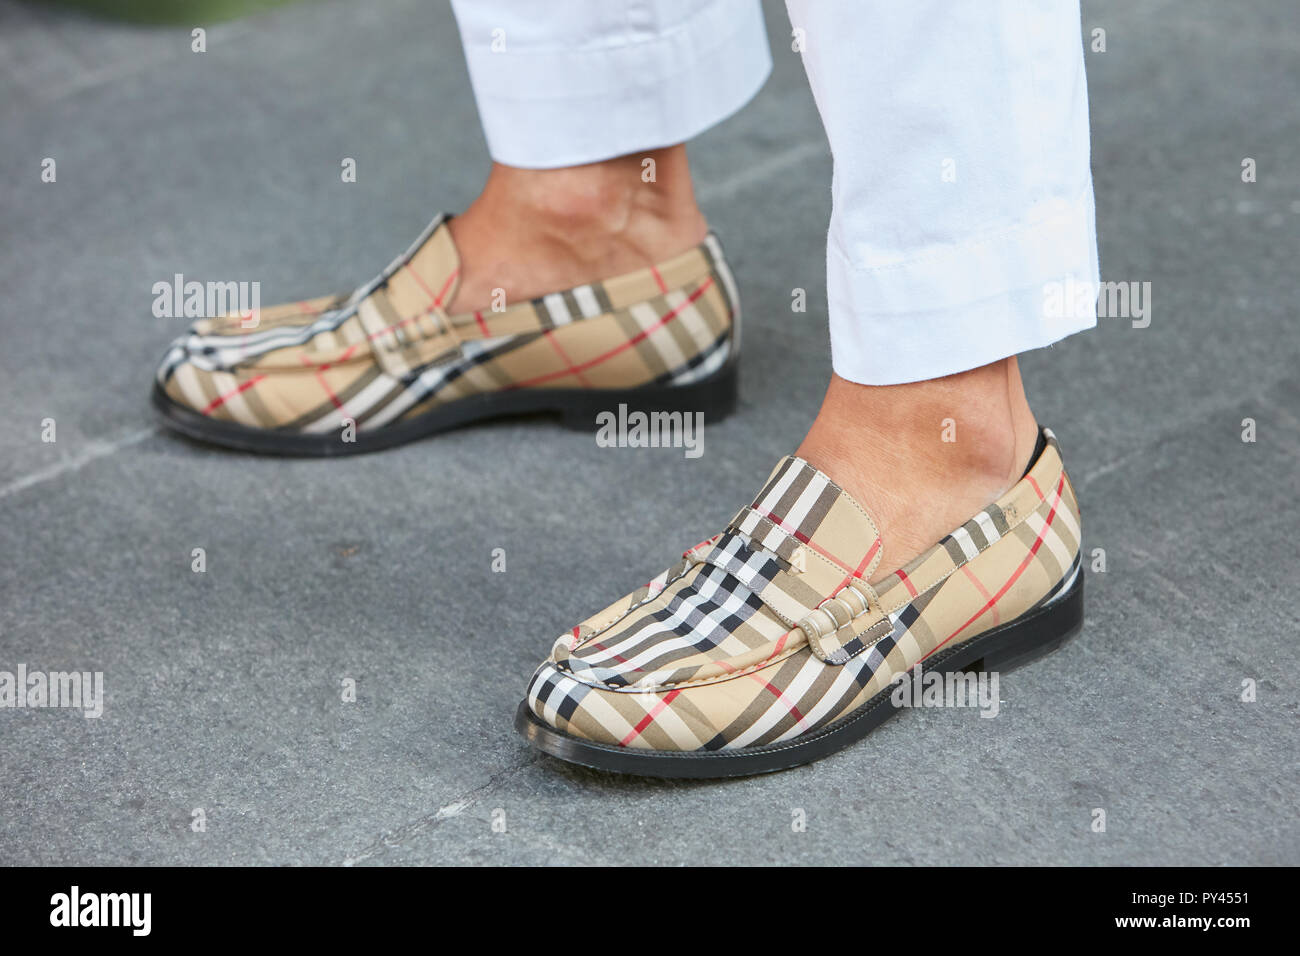 amp; Burberry Immagini Burberry Shoes Shoes Stock Fotos Alamy tEqwnax